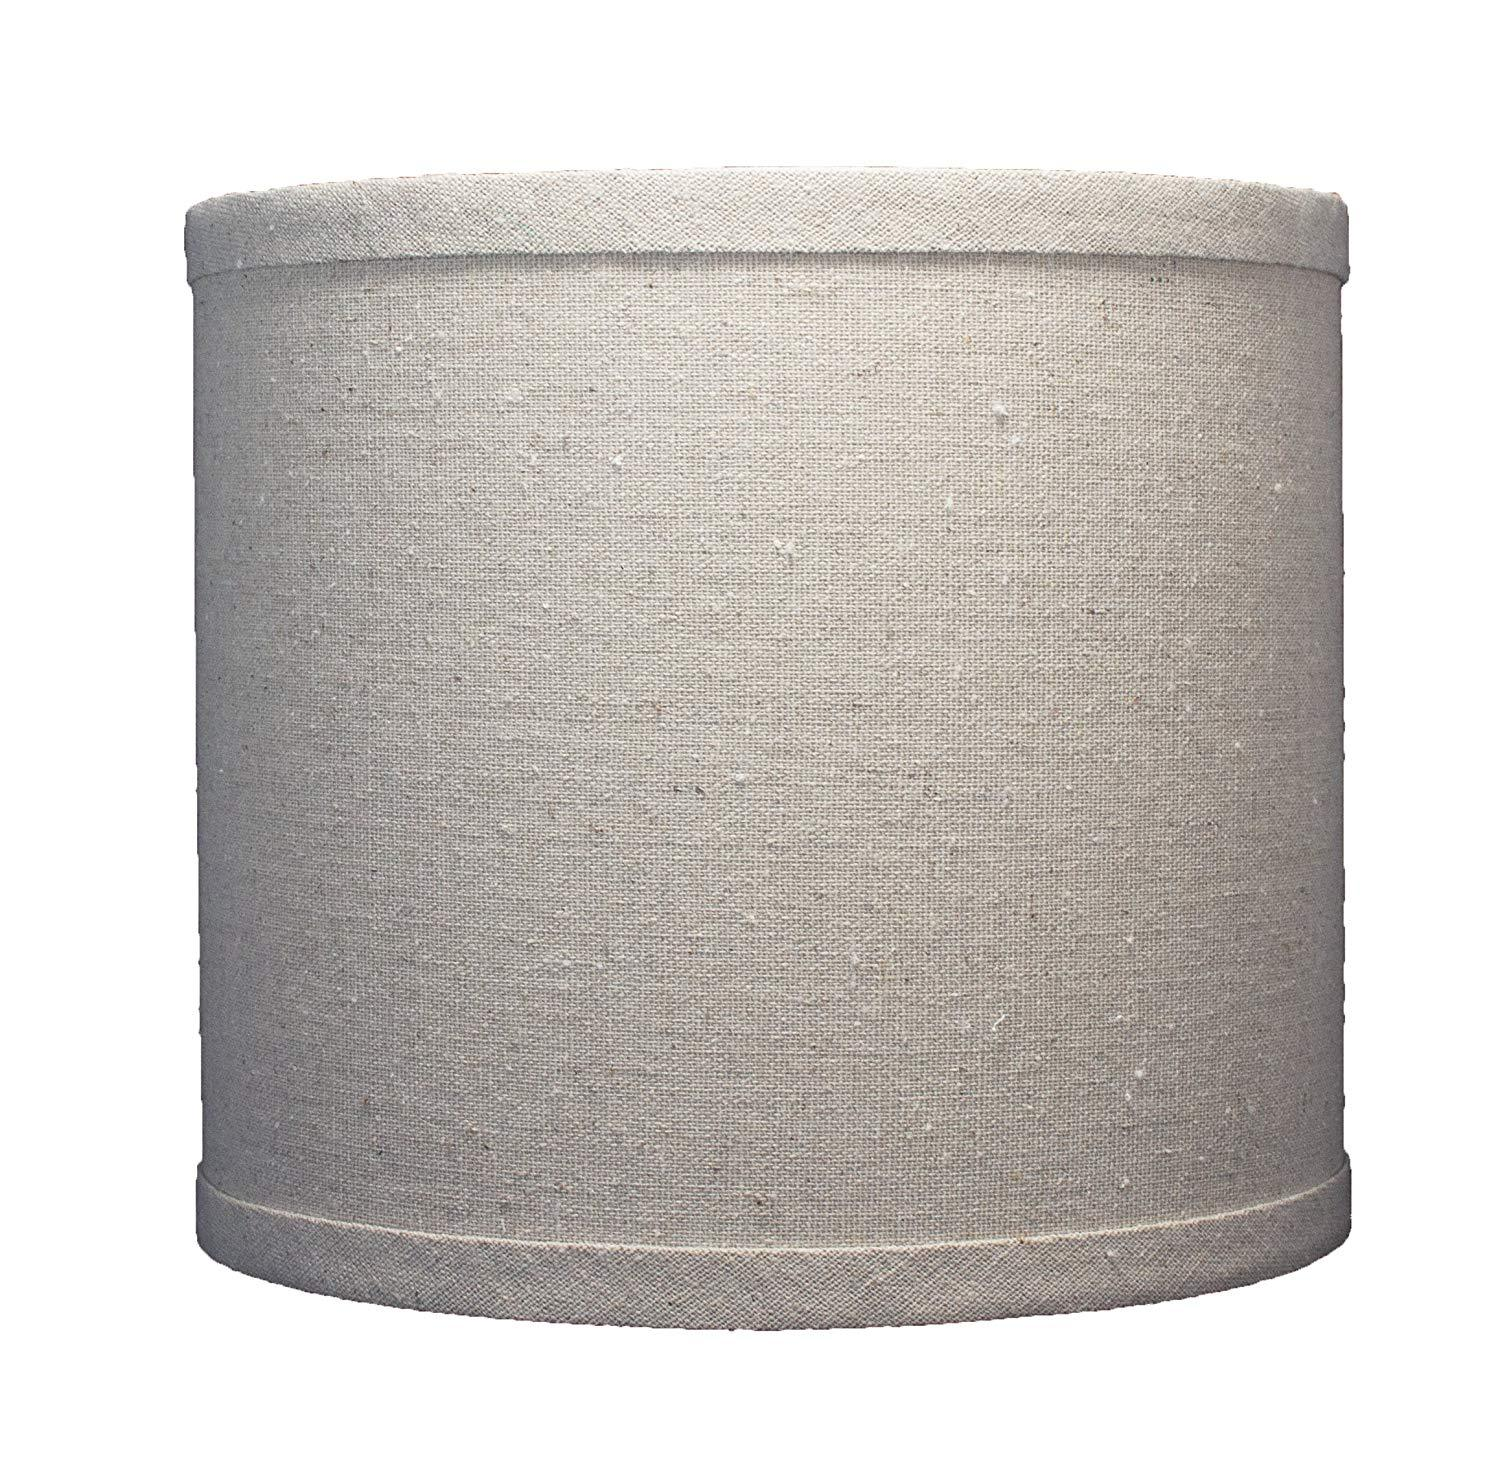 Urbanest Linen Drum Lamp Shade, 8-inch By 8-inch By 7-inch, Spider